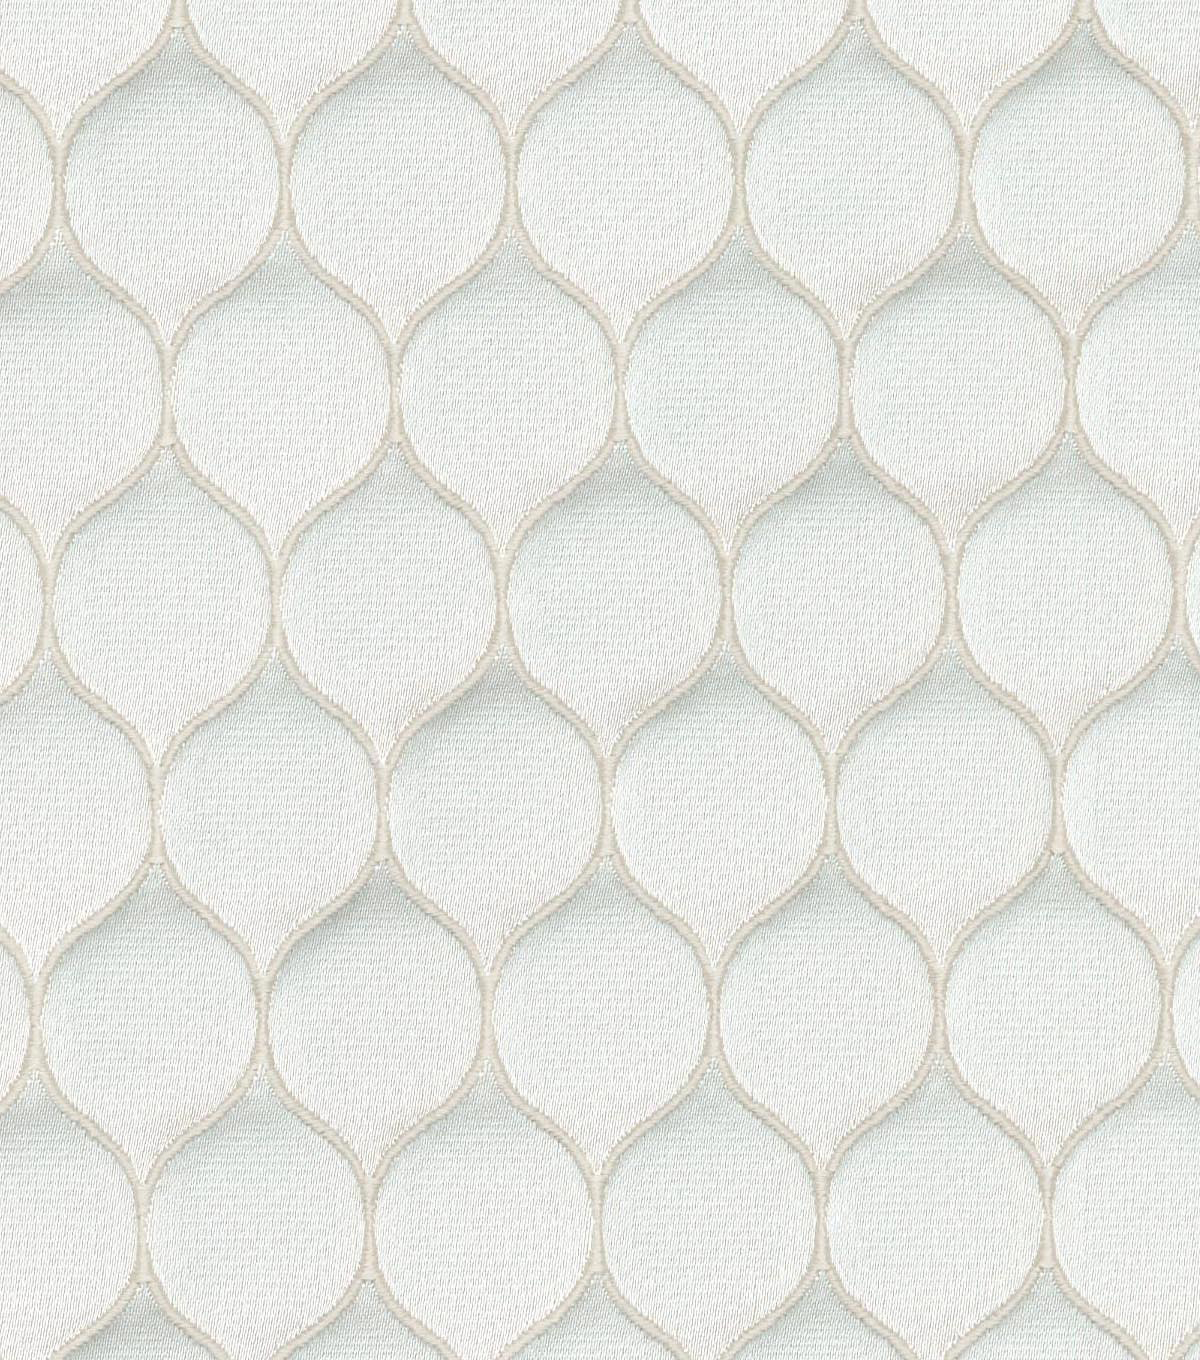 P/K Lifestyles Upholstery Fabric 54\u0027\u0027-Shell Mermaid